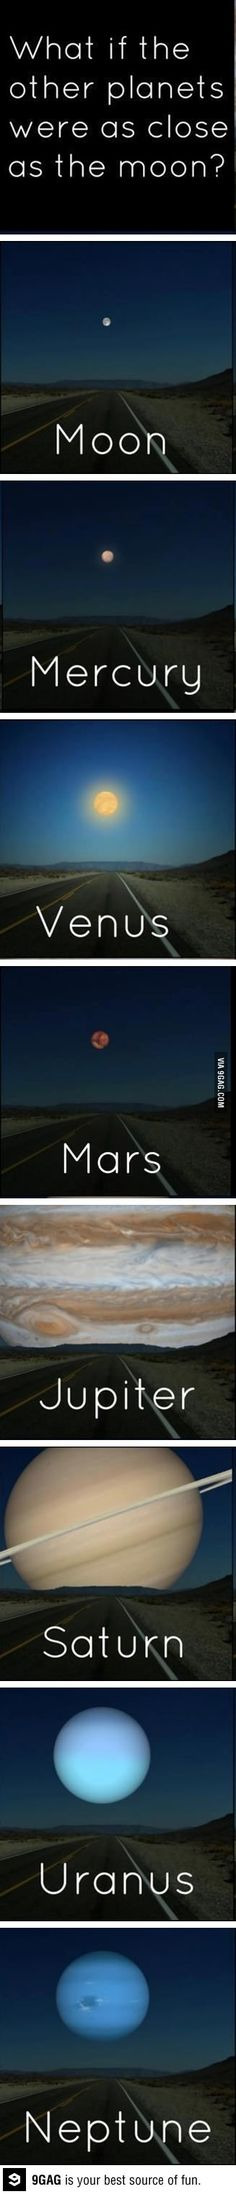 What if the other planets were as close as the moon?